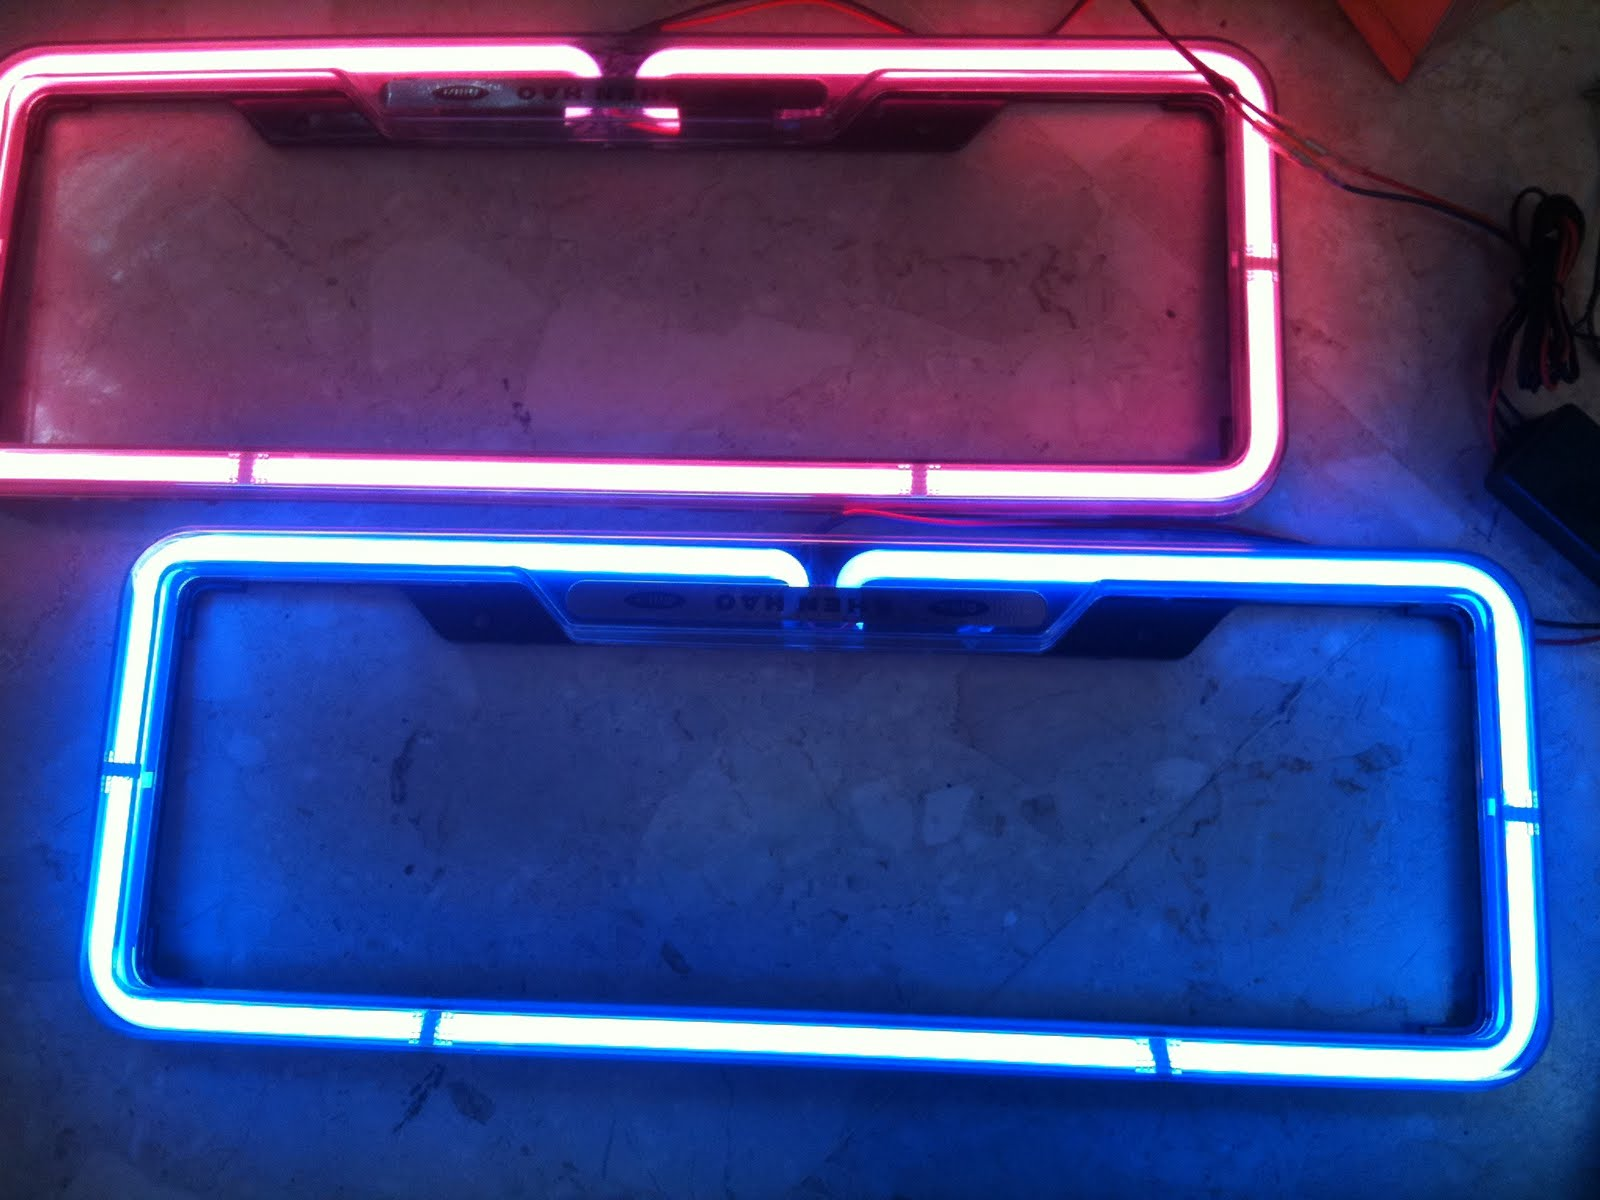 PLATE NUMBER FRAME W NEON LIGHT.